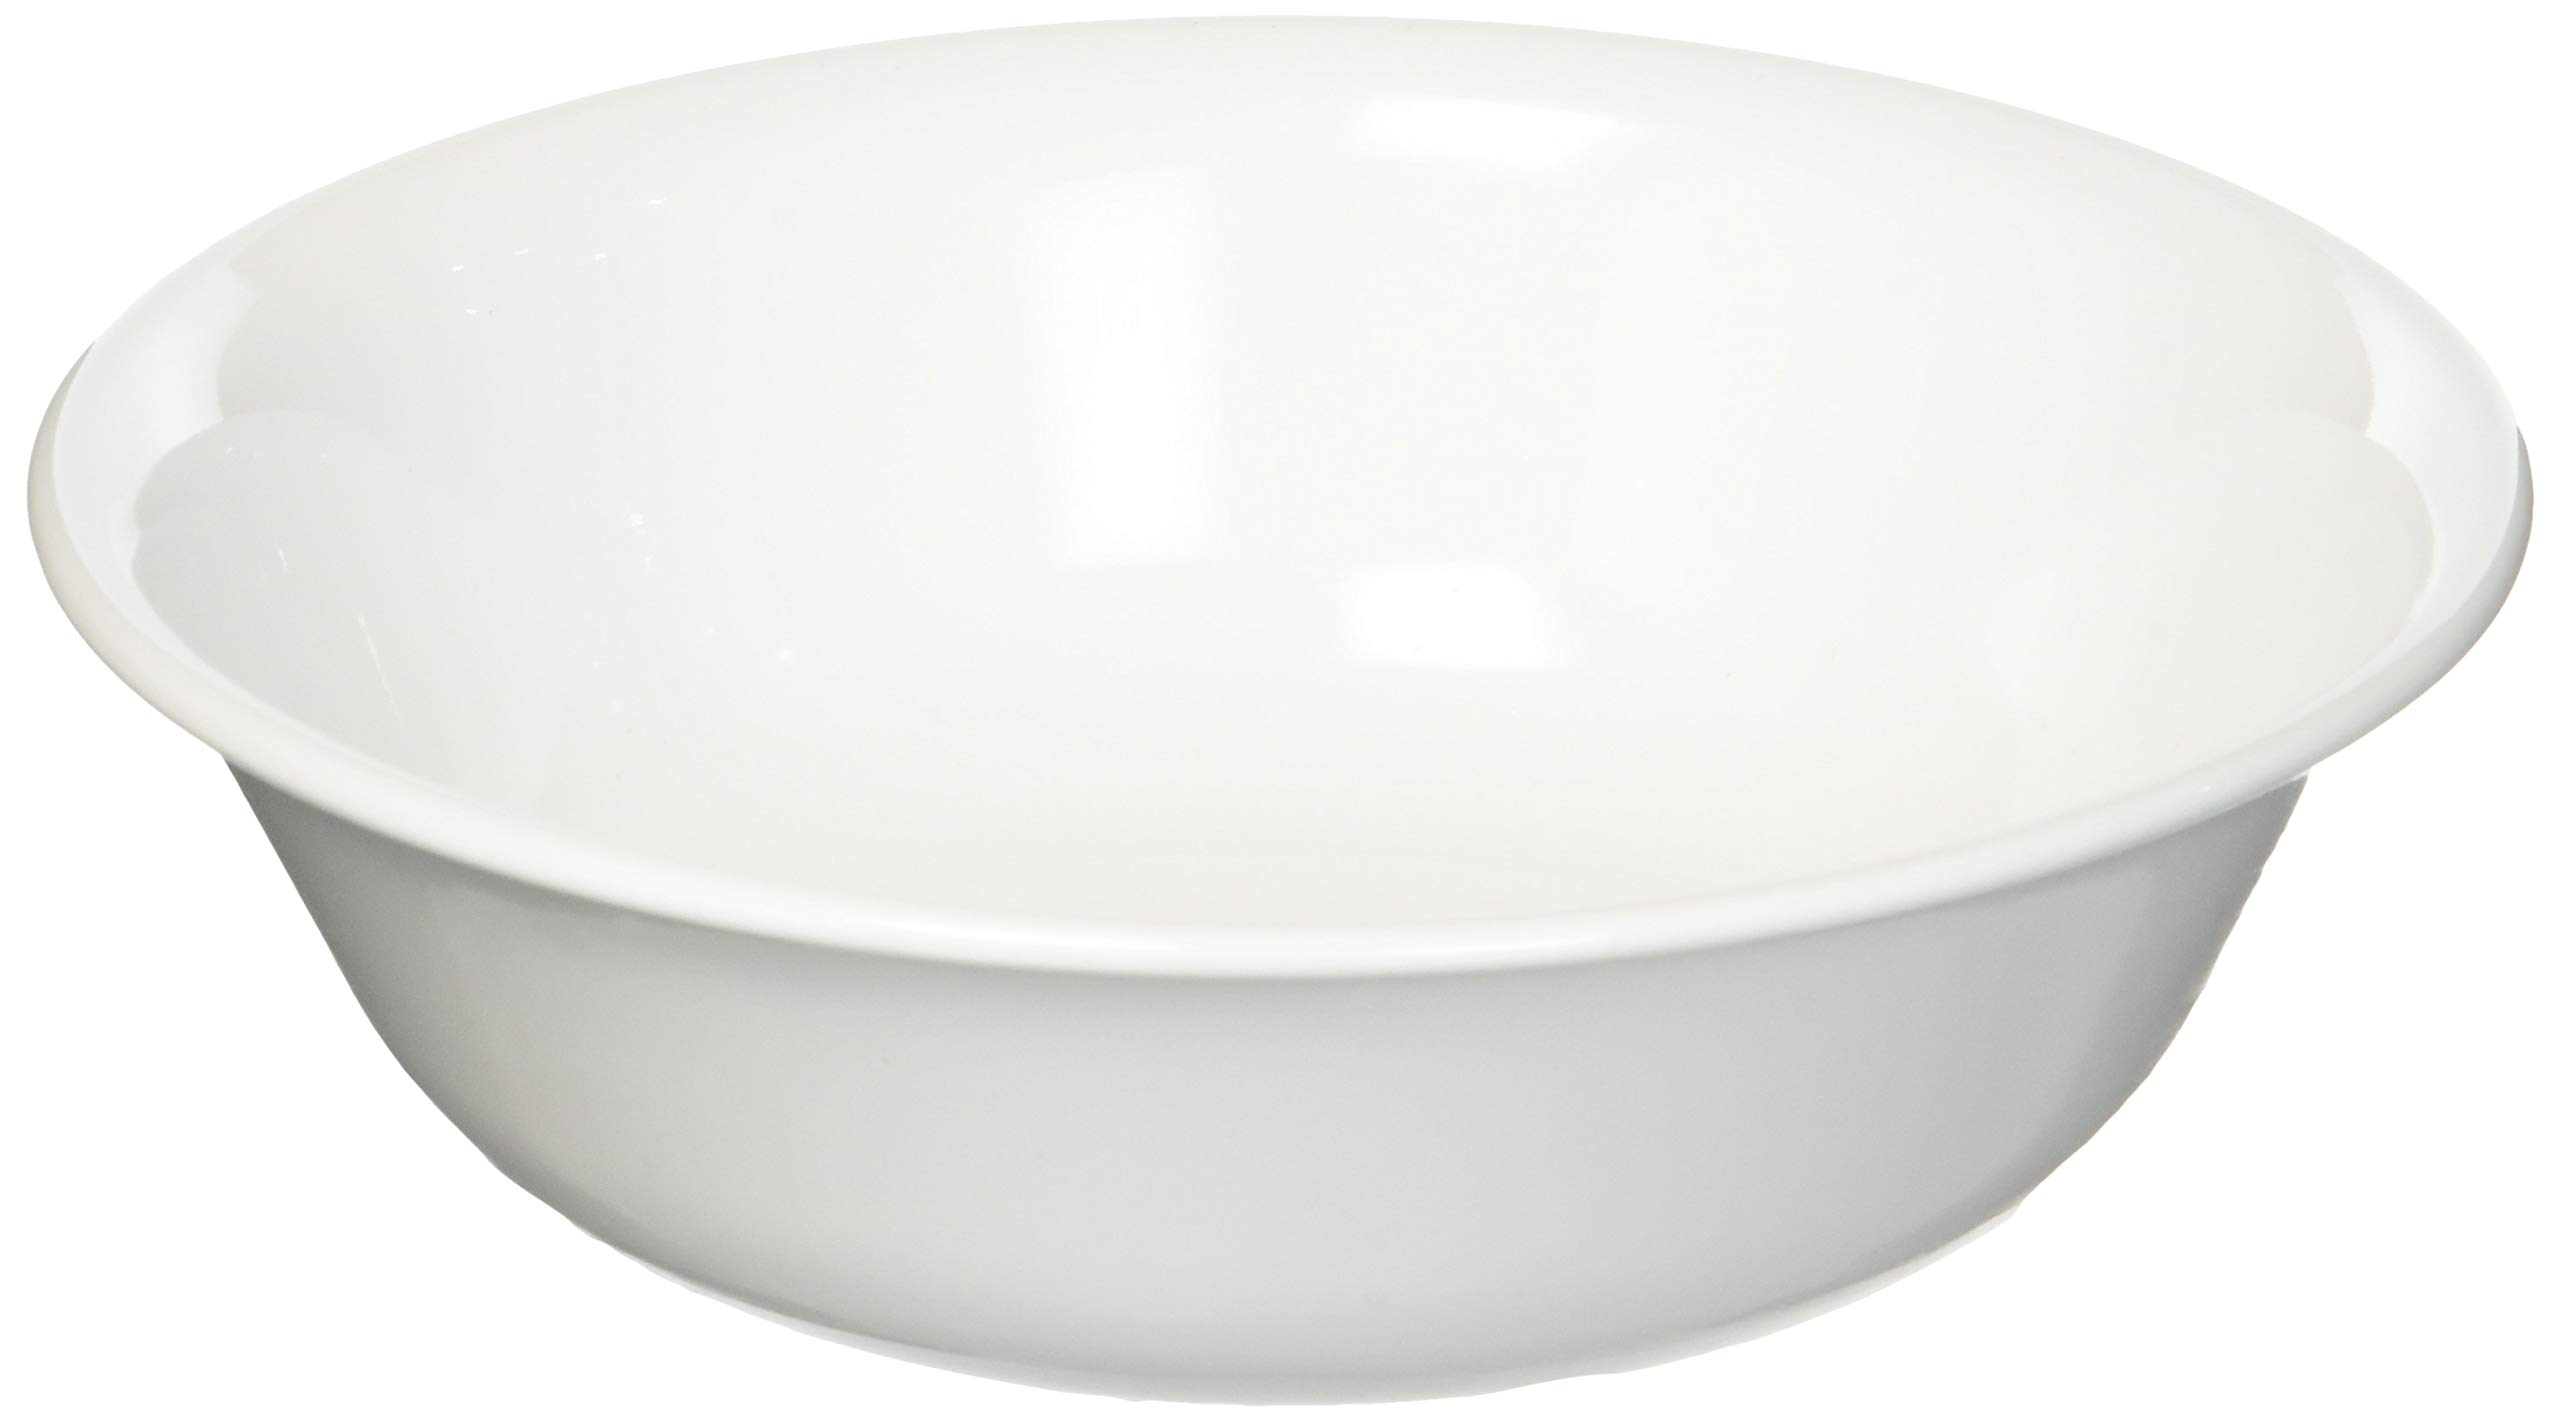 Corelle Livingware Winter Frost White 18-Oz Soup/Cereal Bowl (Set of 4)